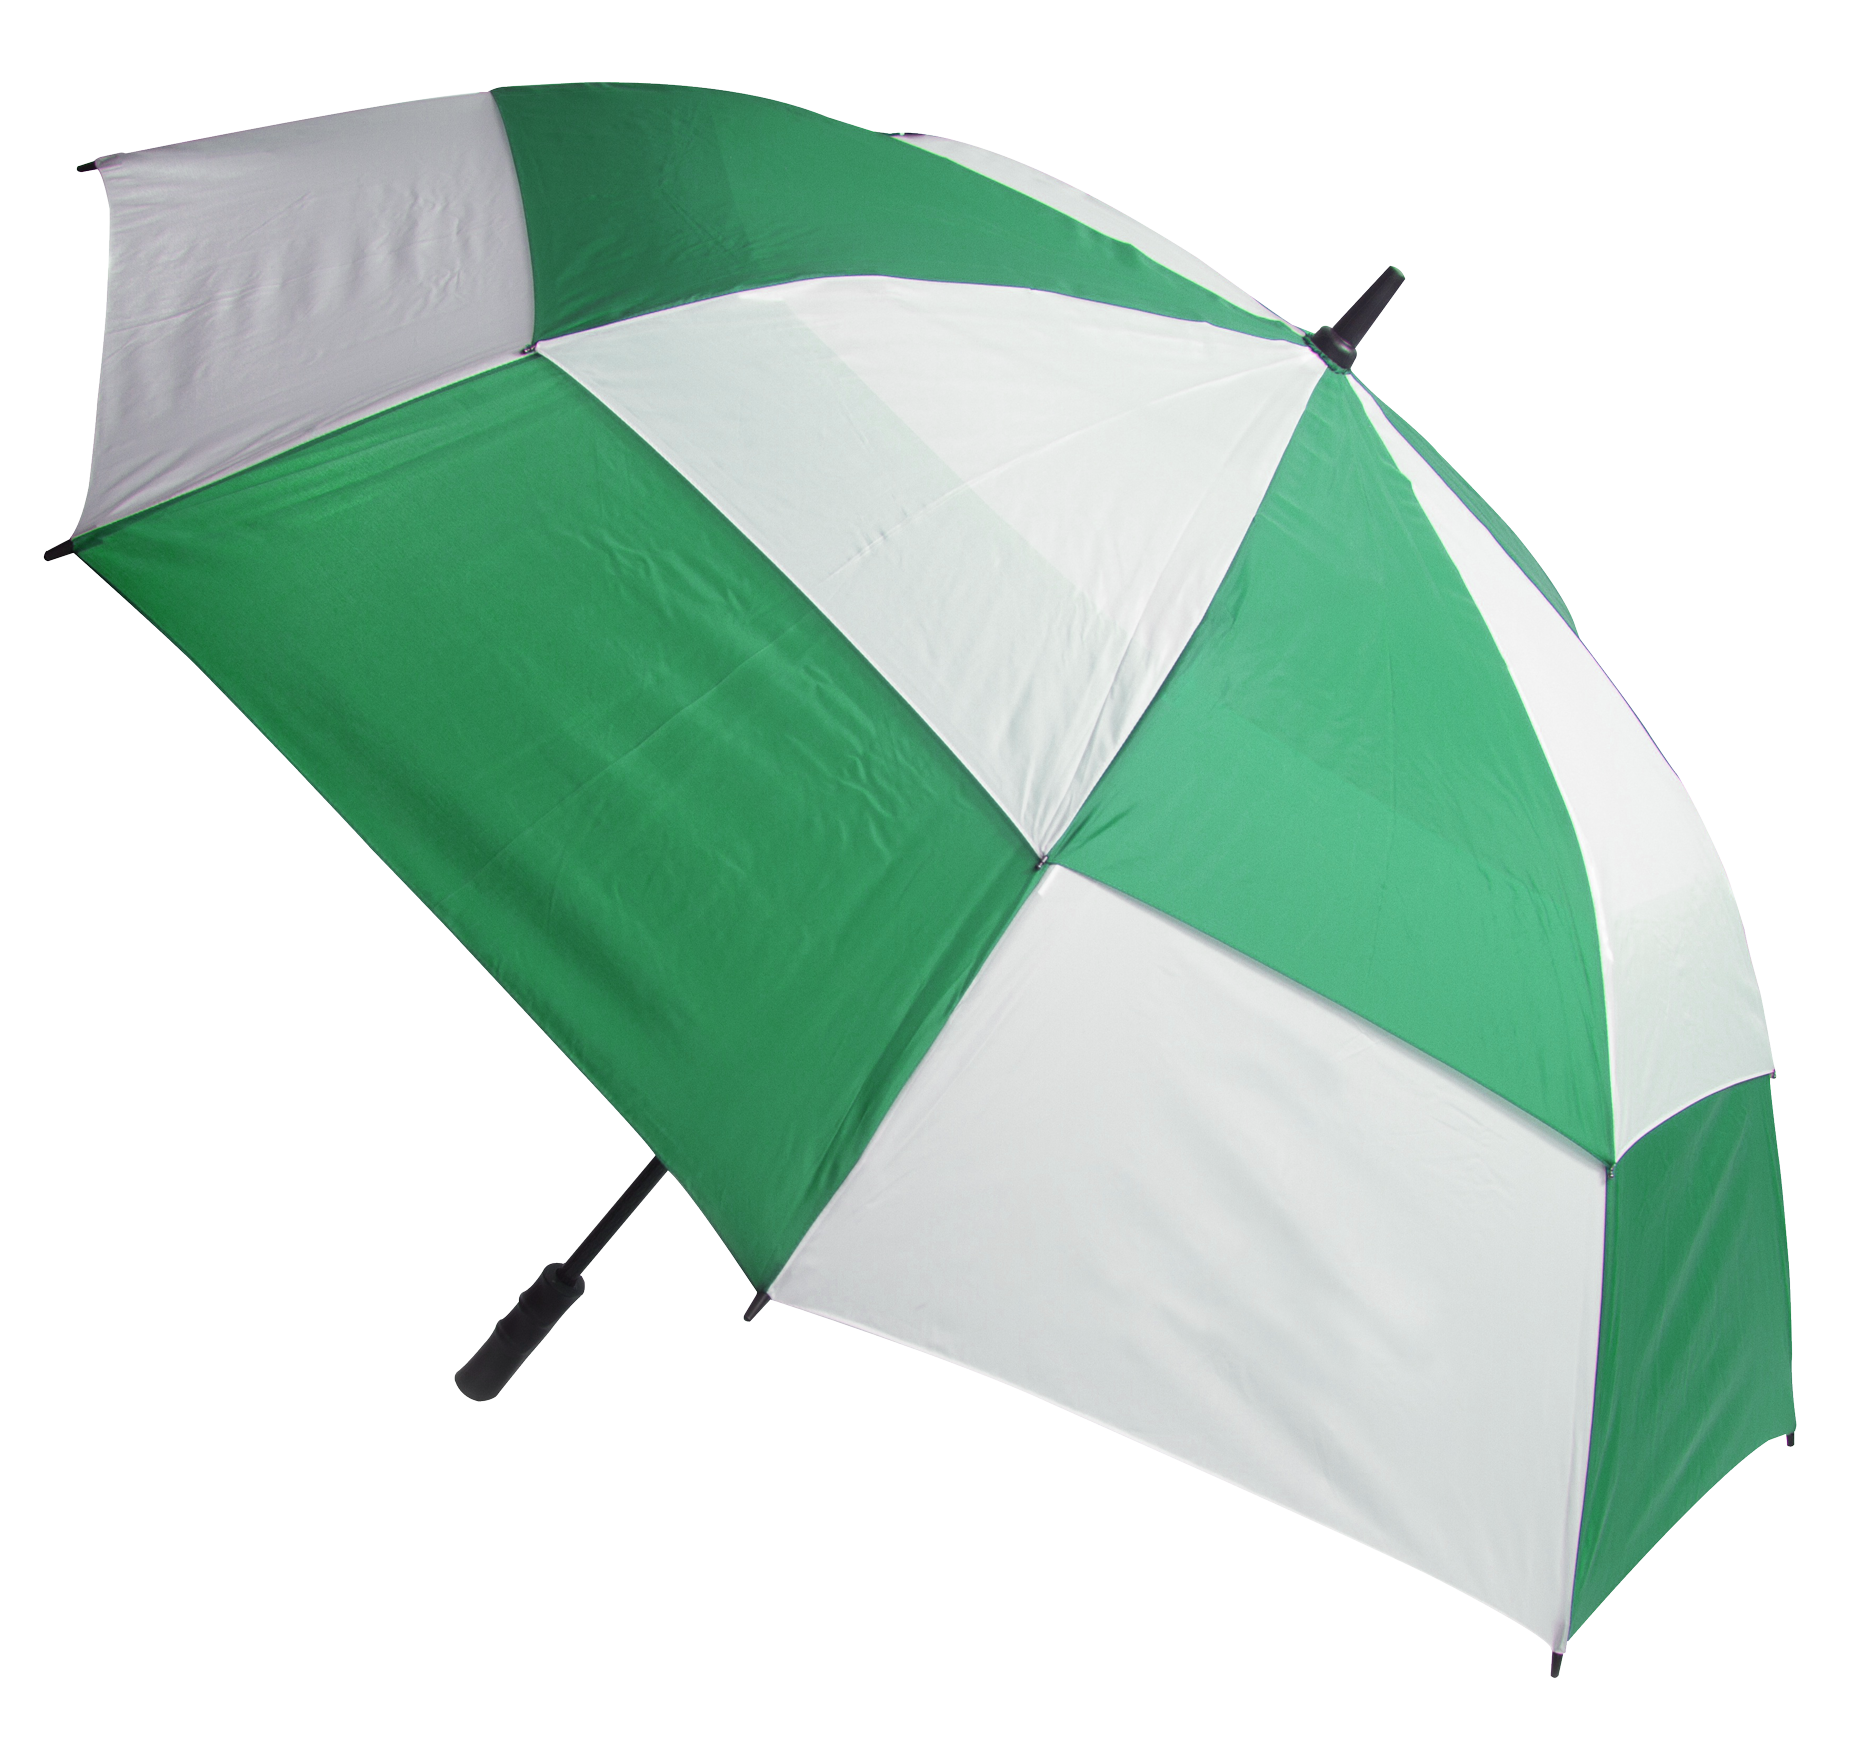 umbrella png transparent image pngpix #18814